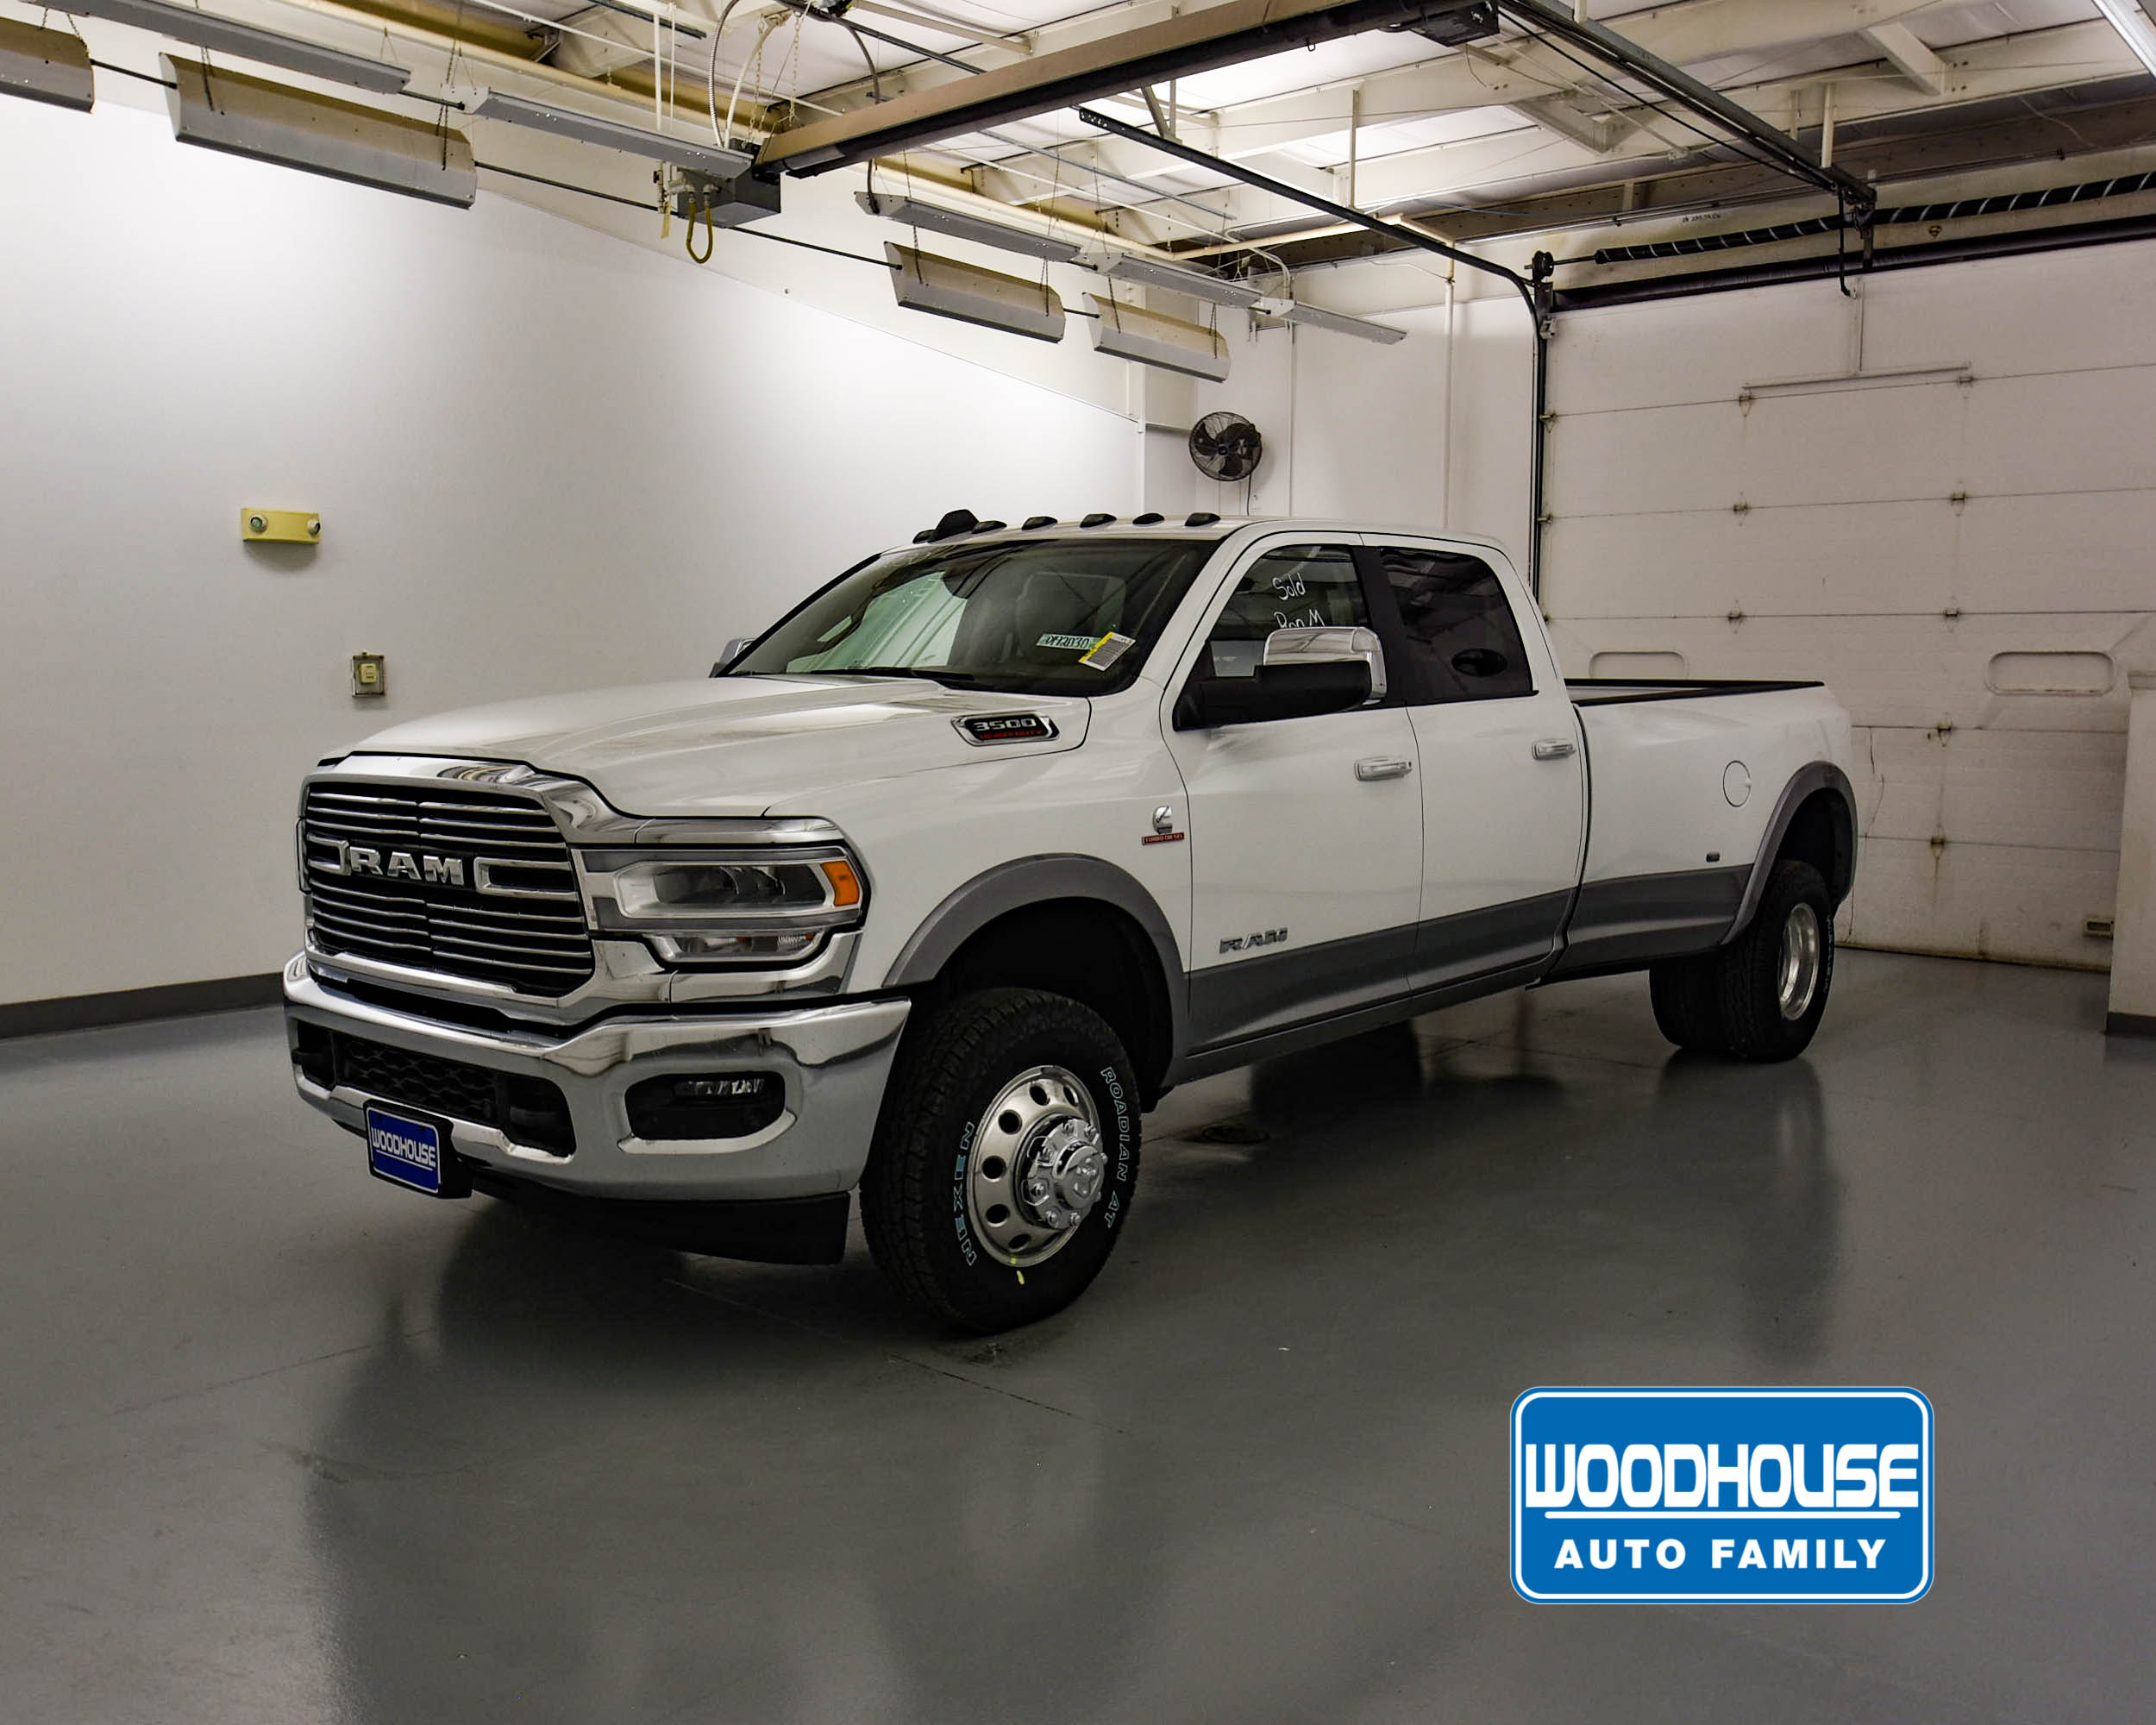 Dodge 3500 For Sale >> Woodhouse New 2019 Ram 3500 For Sale Chrysler Dodge Jeep Ram